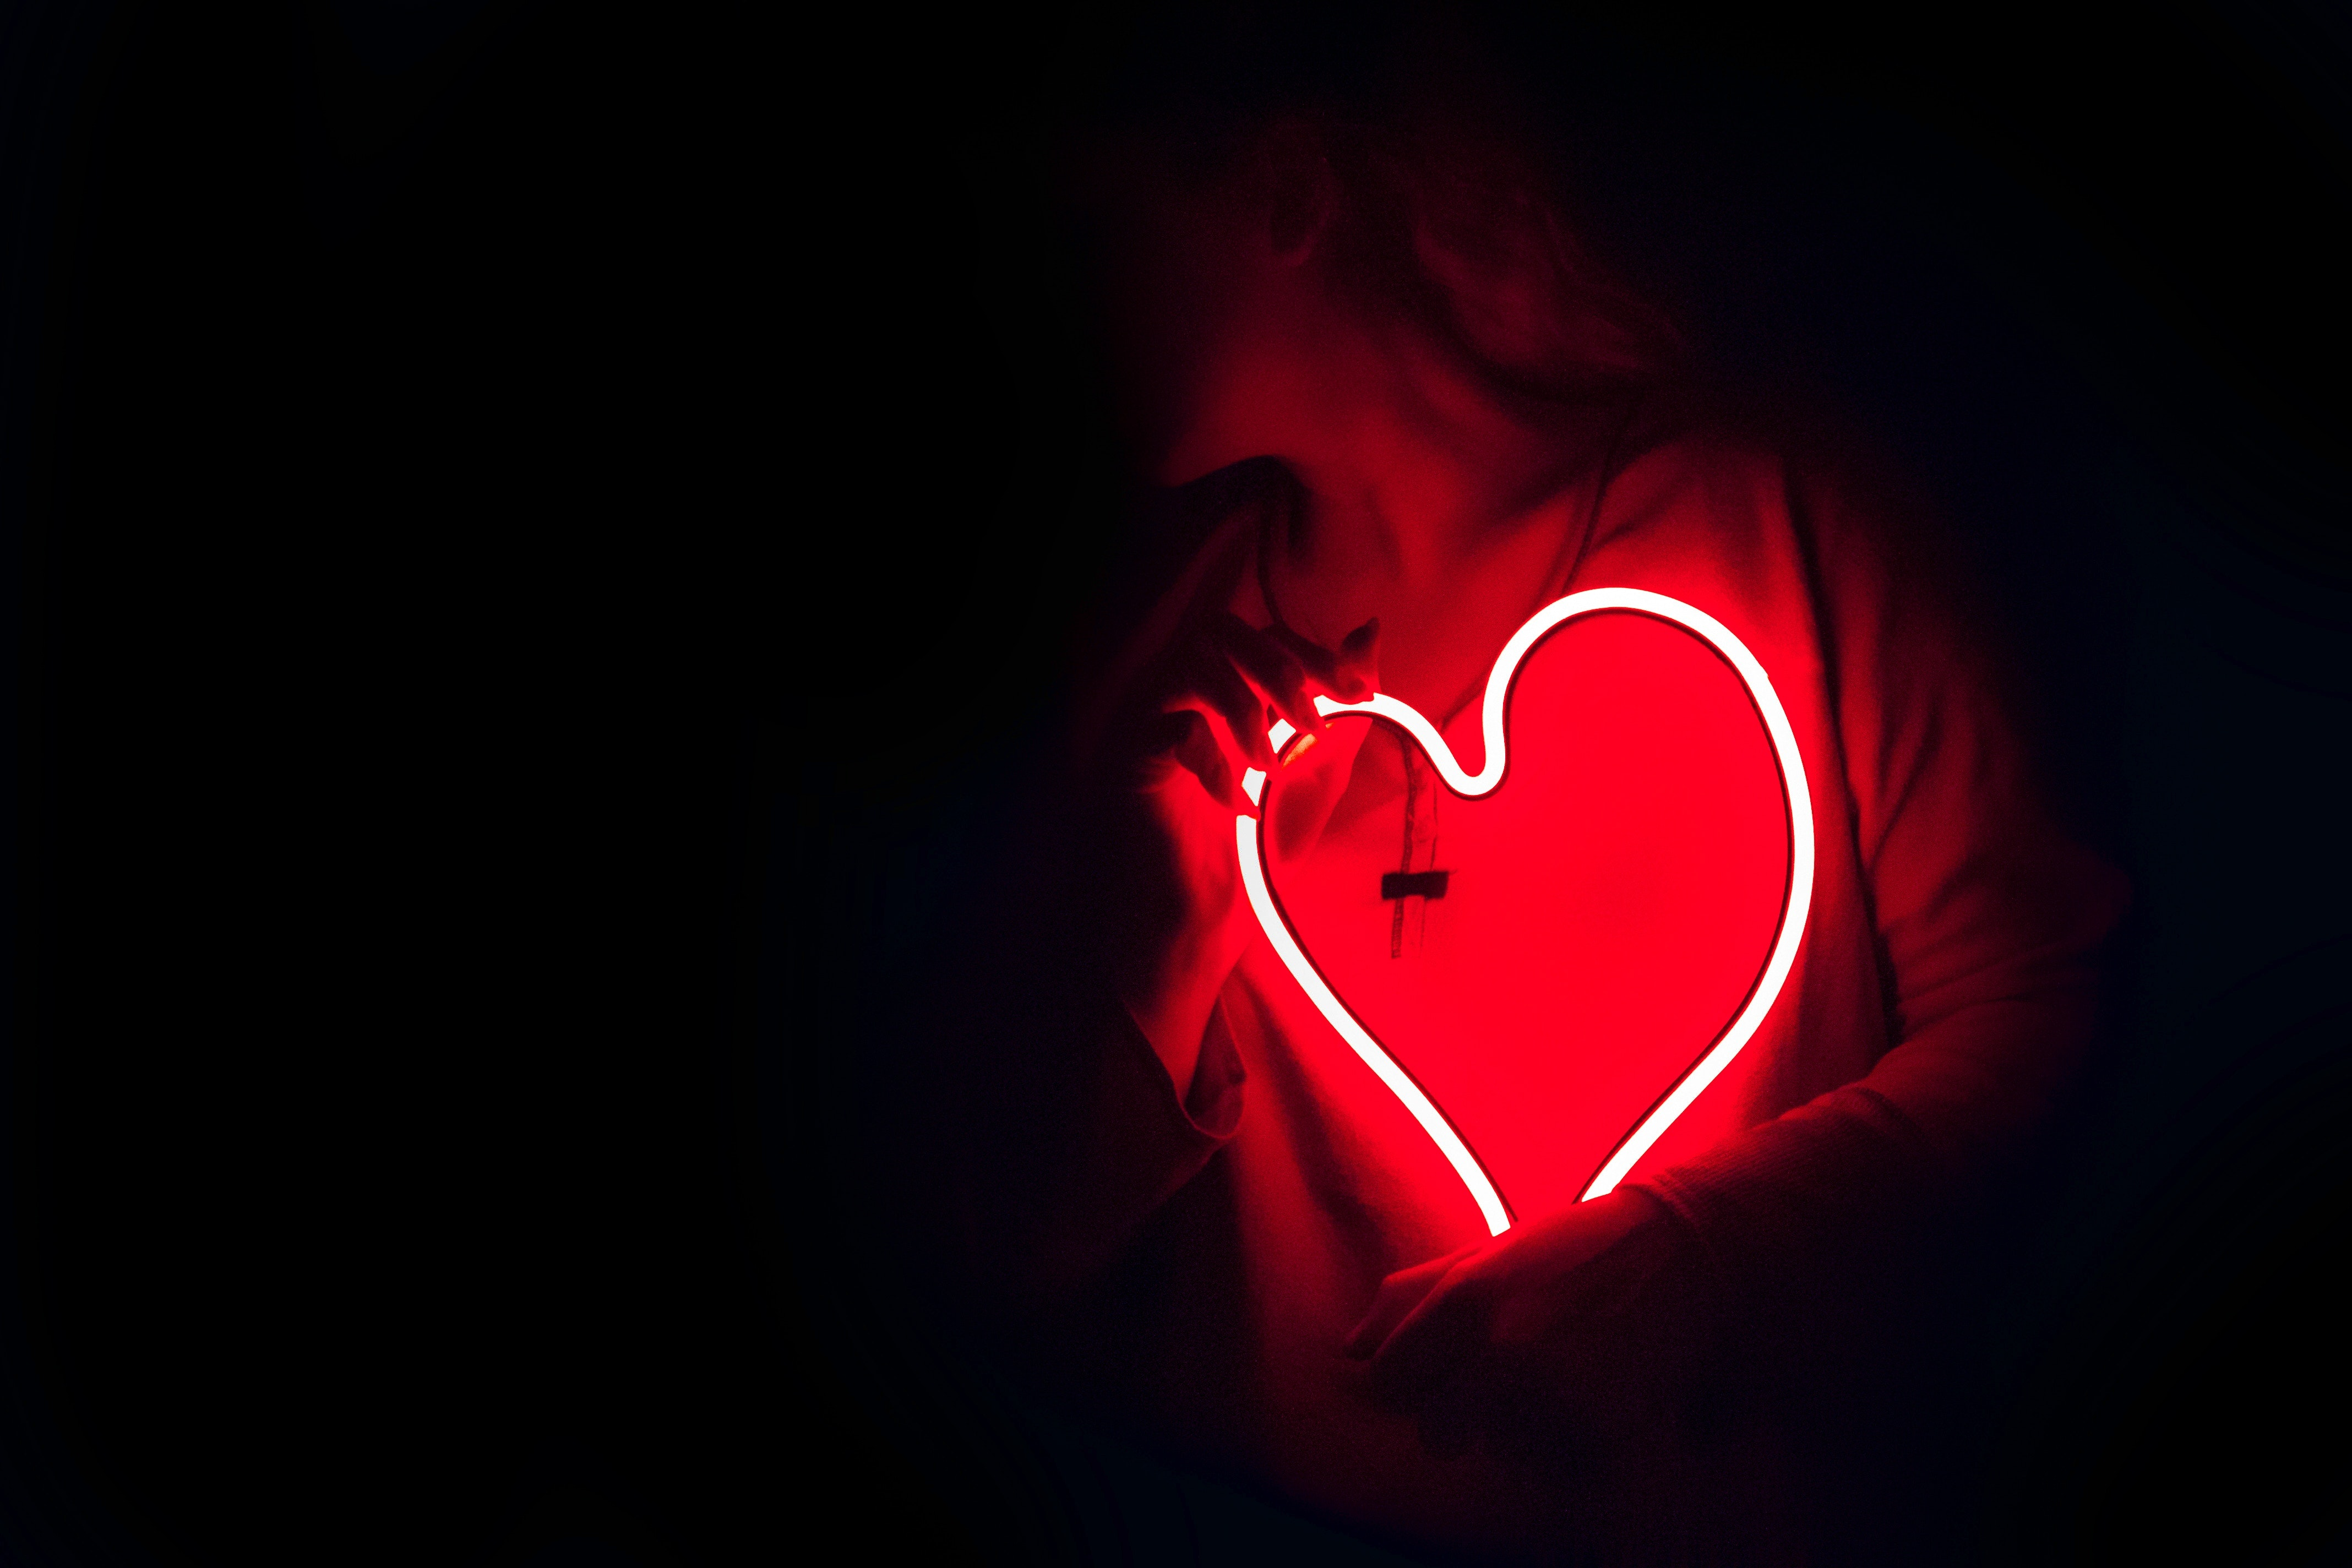 Hearts Are The Symbol Of Love Have A Look At Our Broad Collection Of Heart Pictures And Download Your Images For Free